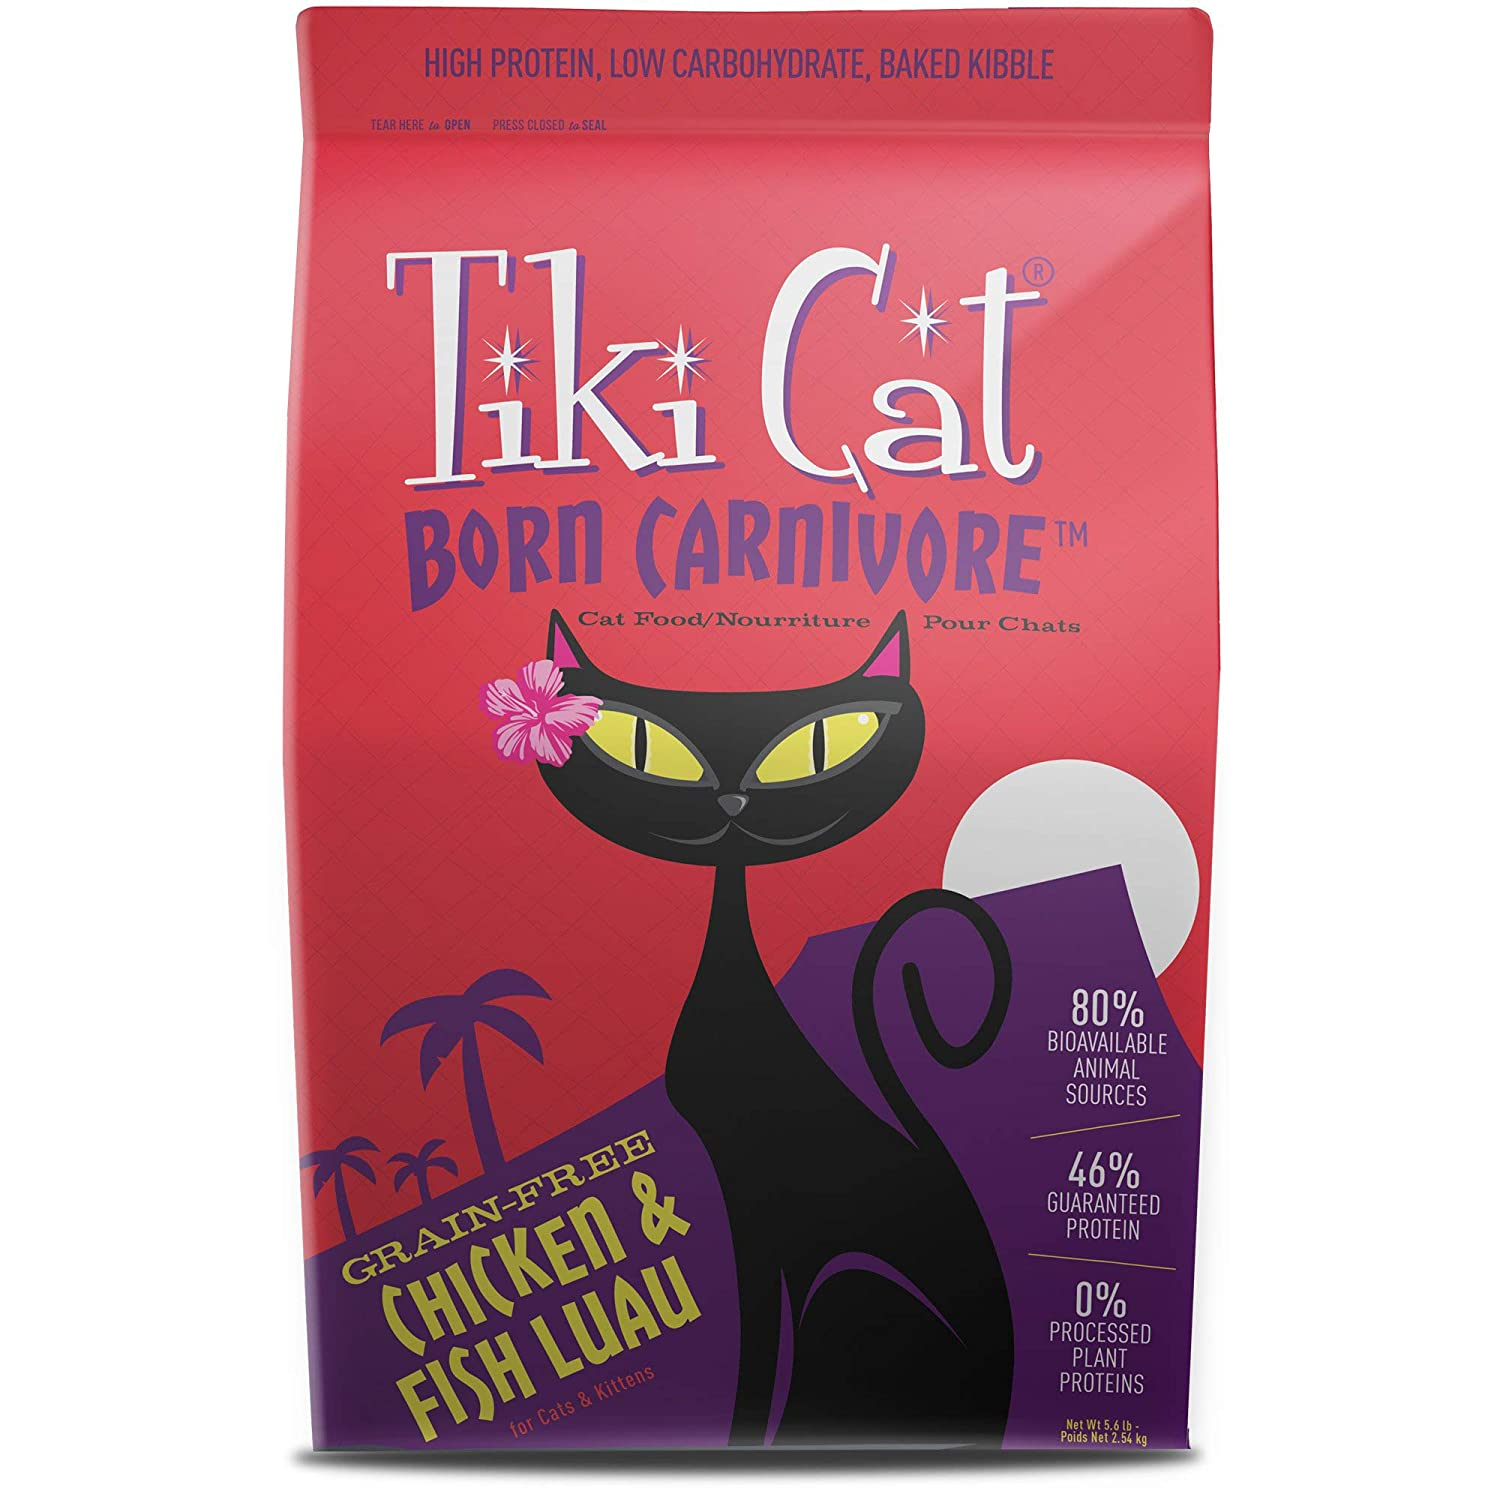 Tiki Cat Born Carnivore Cat Food – Grain Free, Dry Food for Cats - 5.6 lbs. - Chicken & Fish Luau